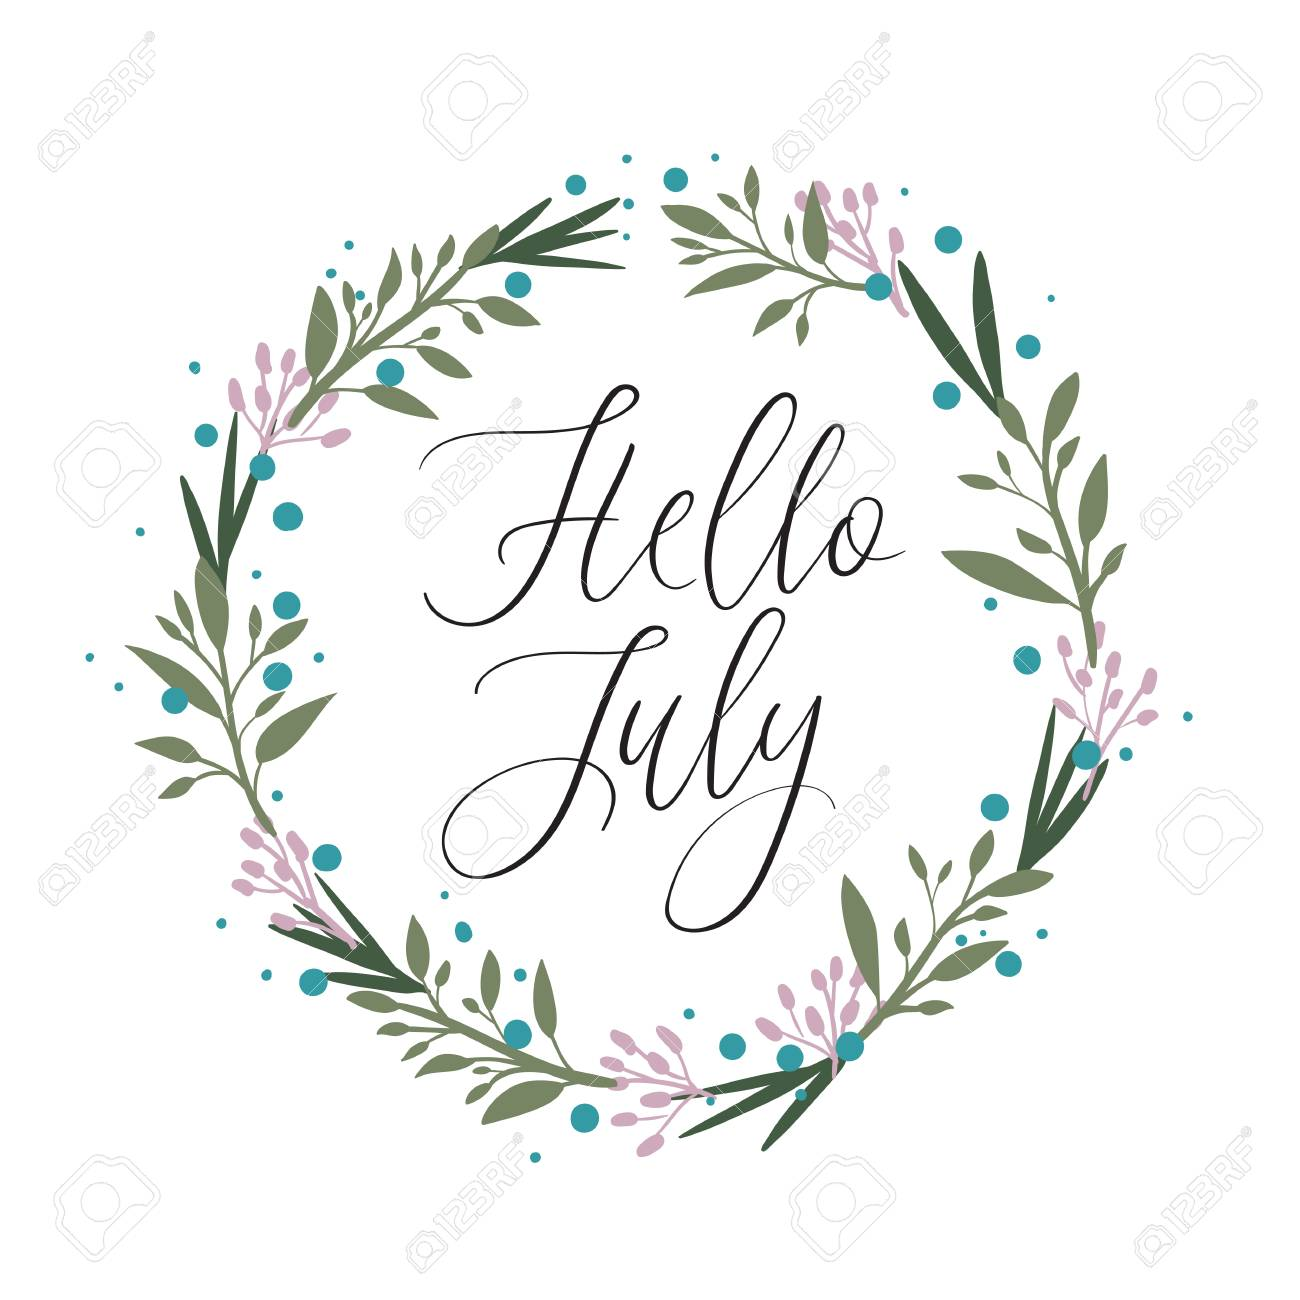 Hello July Calligraphy Inscription. Summer Greeting Card With Floral  Wreath, Postcard, Card,